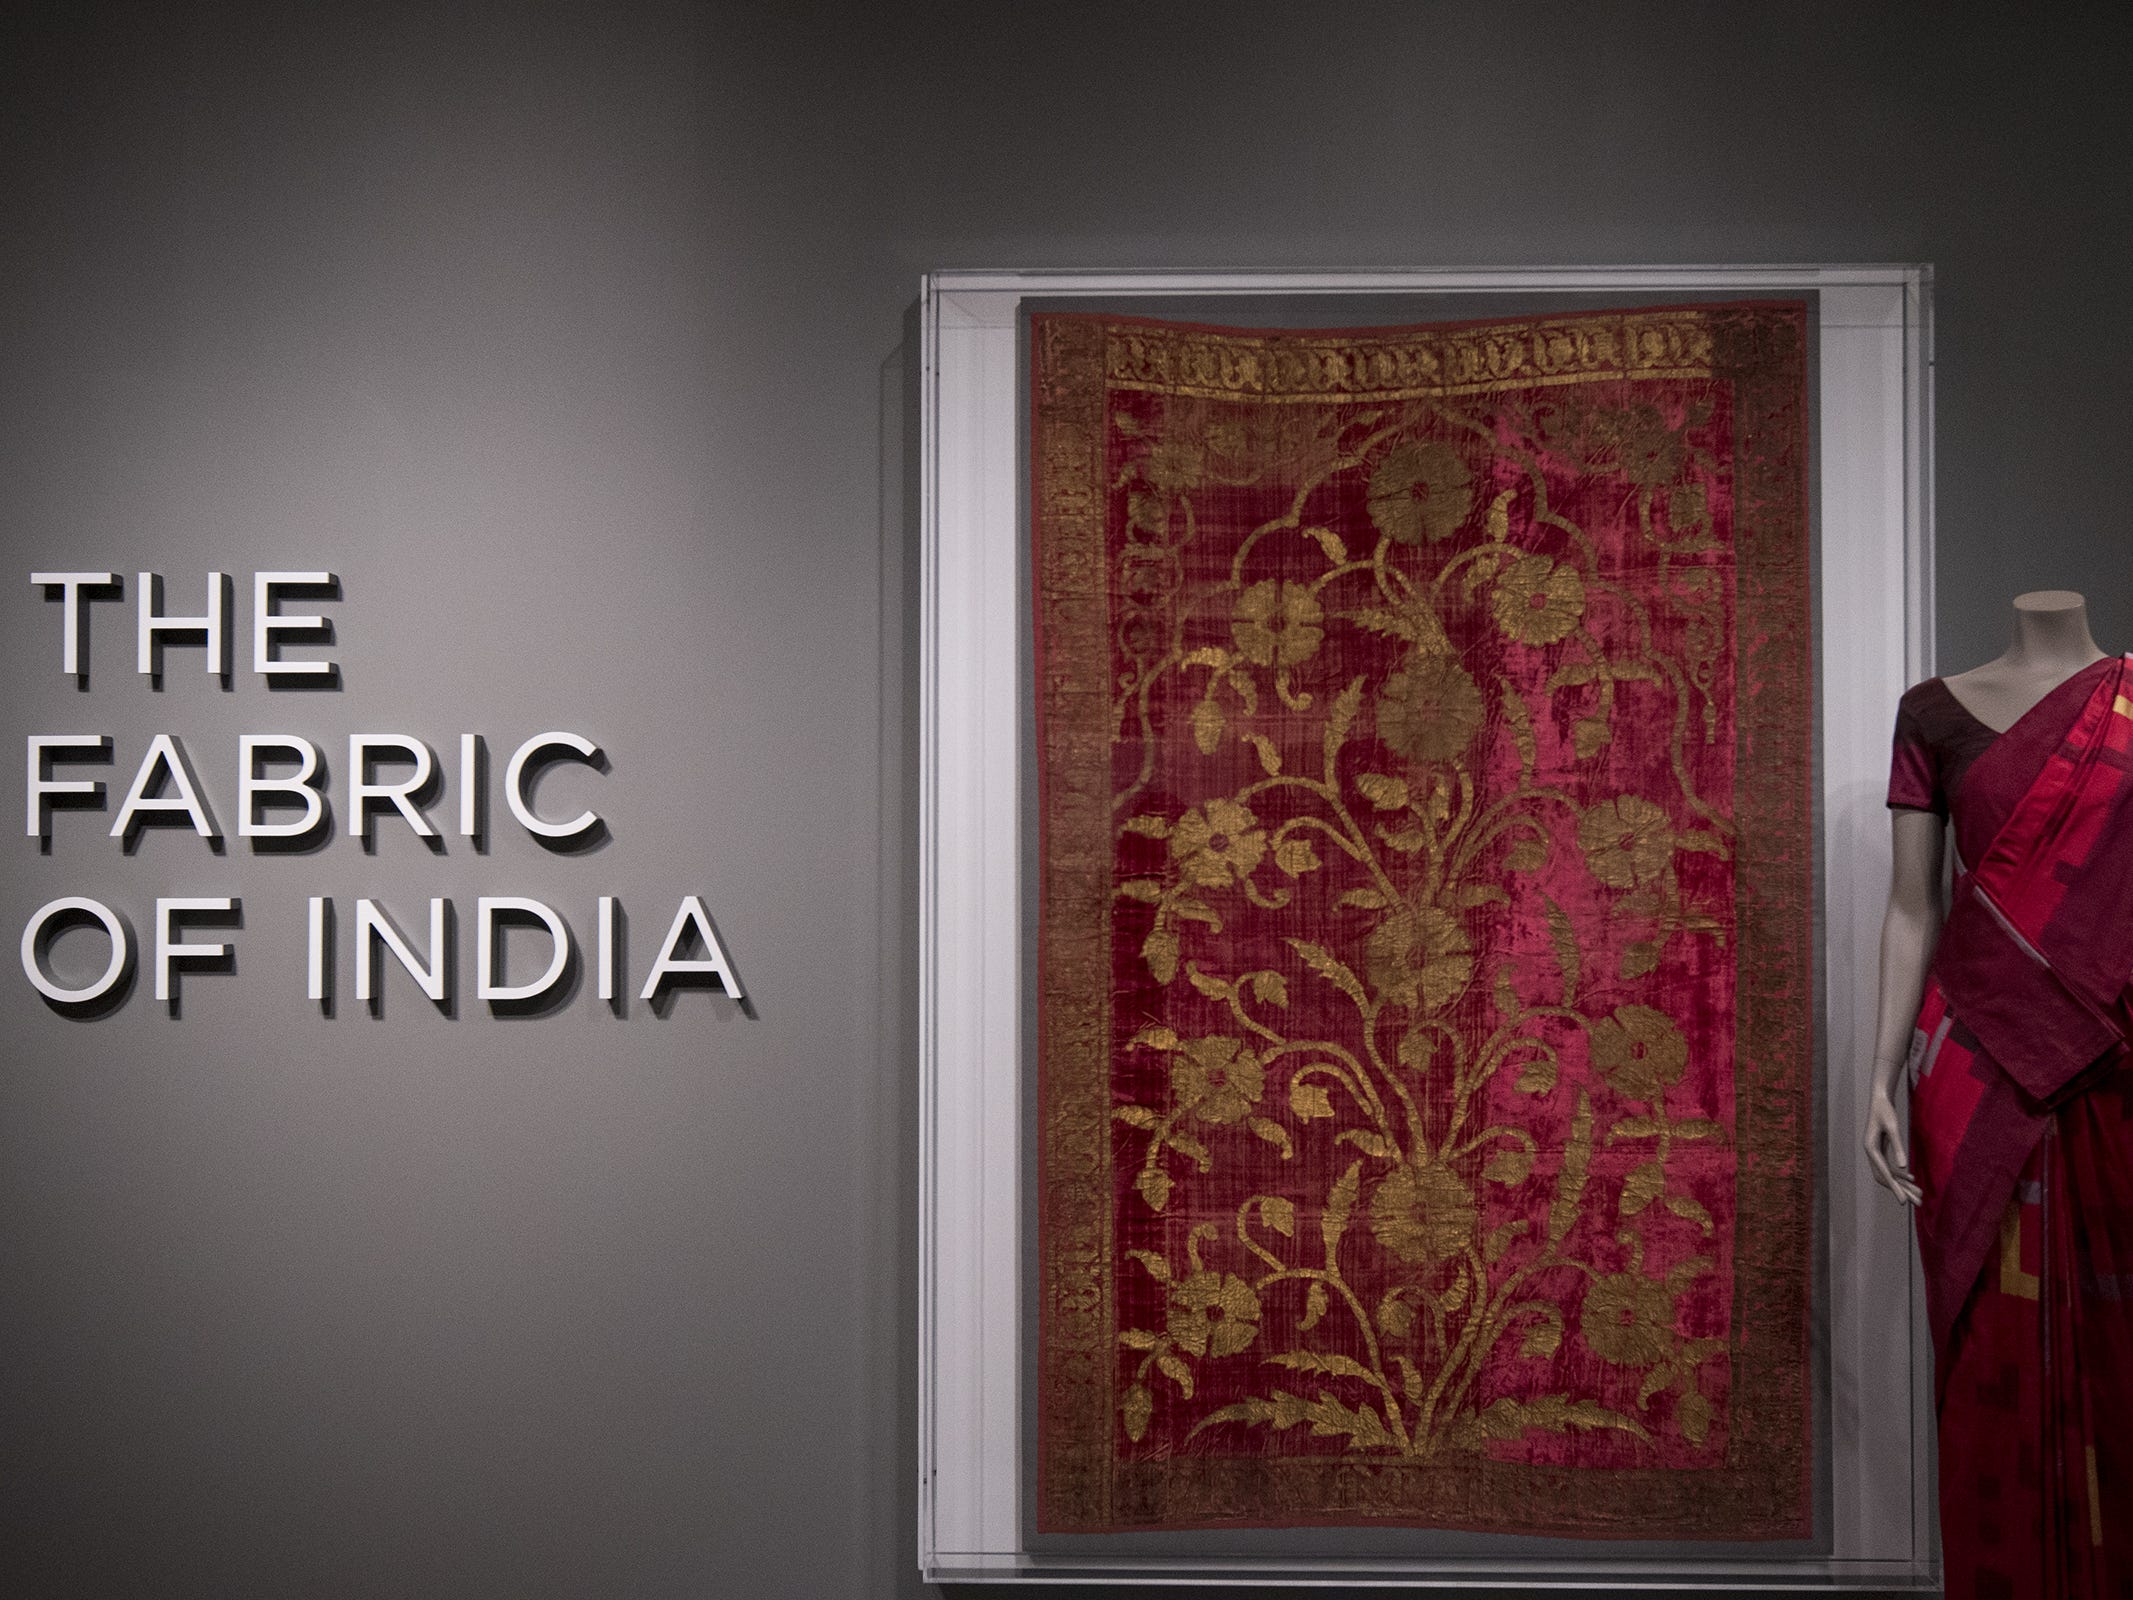 The new Fabrics of India exhibit is the center piece of this month's Art After Dark after-hours event at the Cincinnati Art Museum.